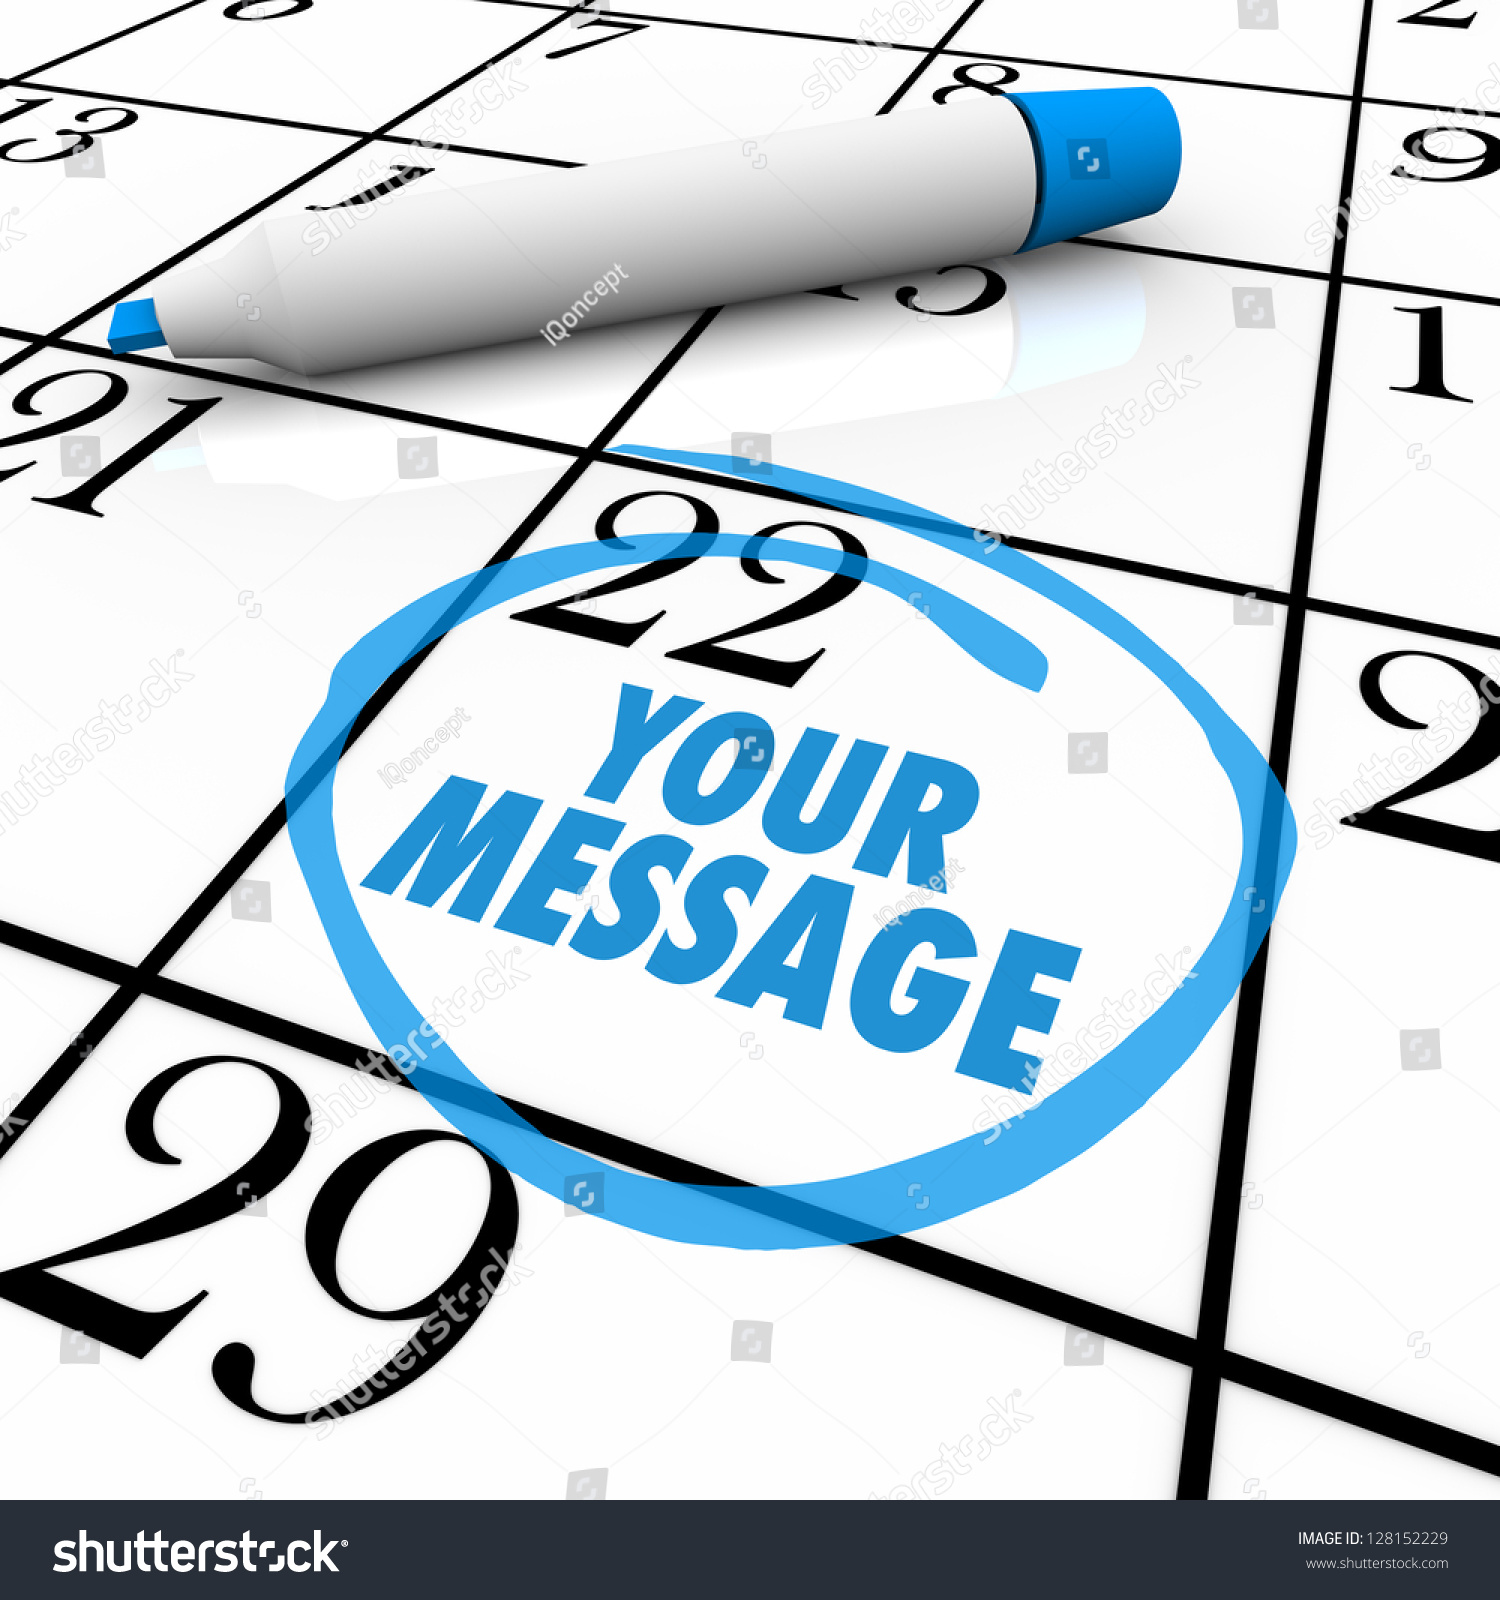 The Words Your Message Circled On A Calendar Or Event Planner To Remind You Of An Important